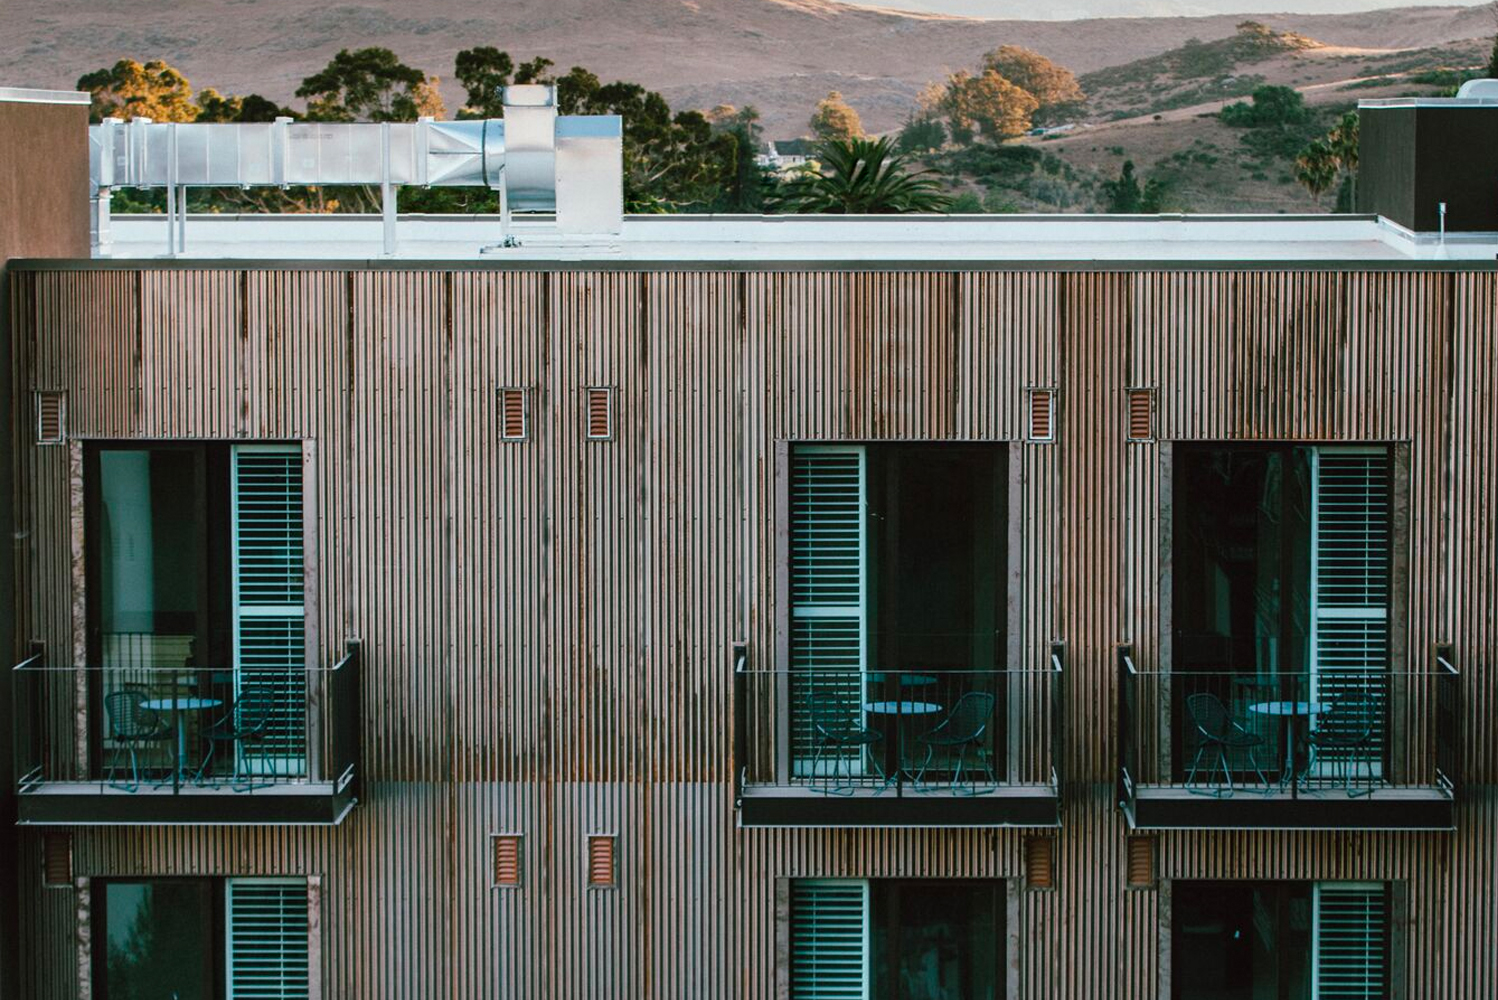 Hotel San Luis Obispo, Piazza Hospitality's newest hotel, has opened in California's Central Coast enclave of San Luis Obispo.